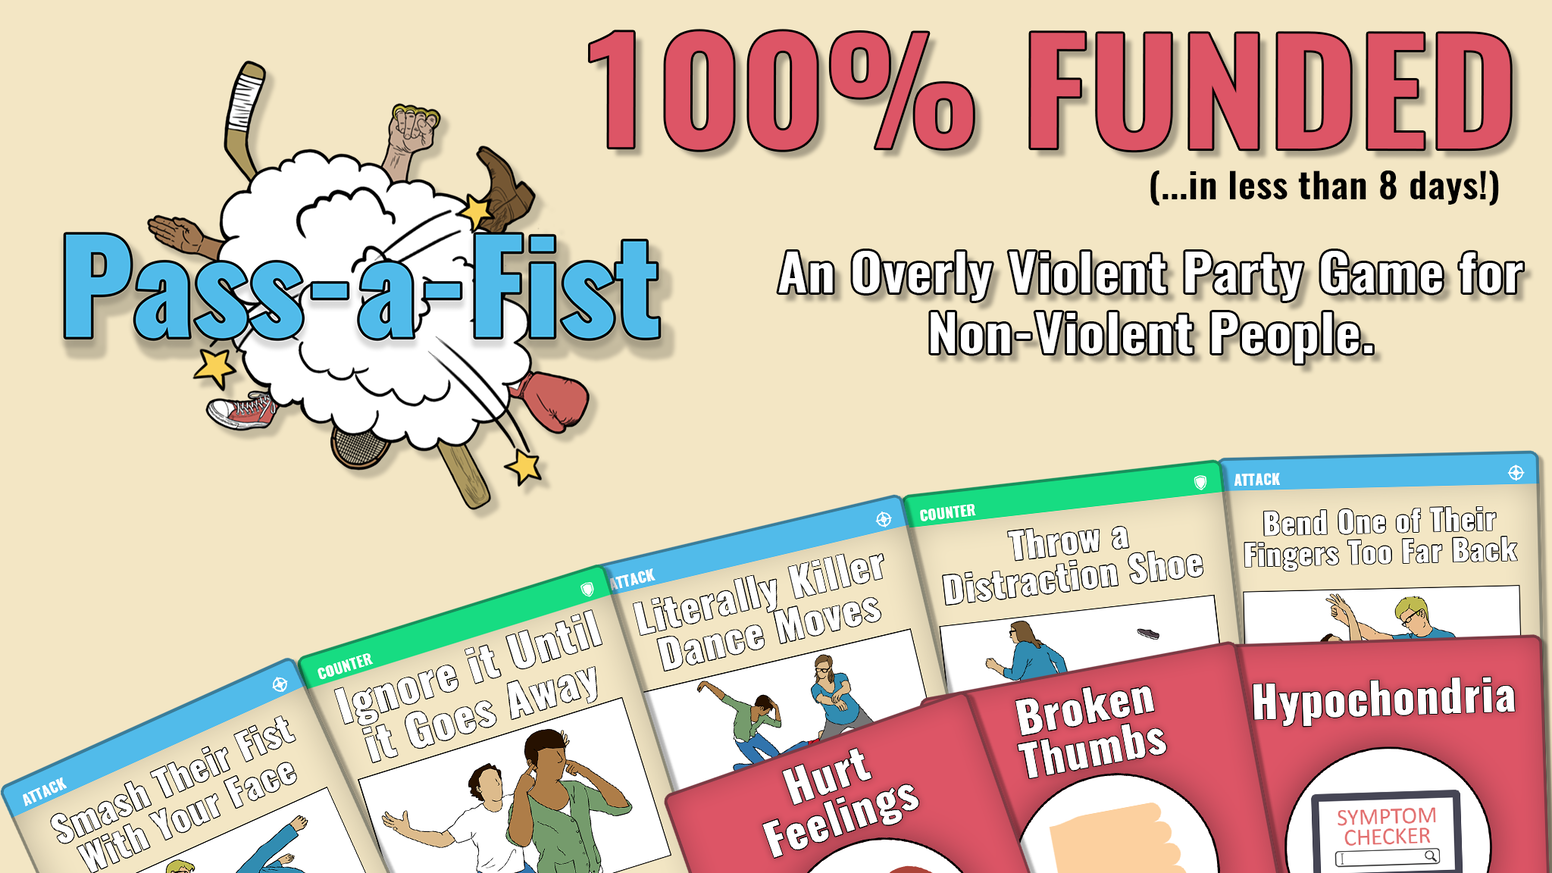 An overly violent party game for non-violent people.